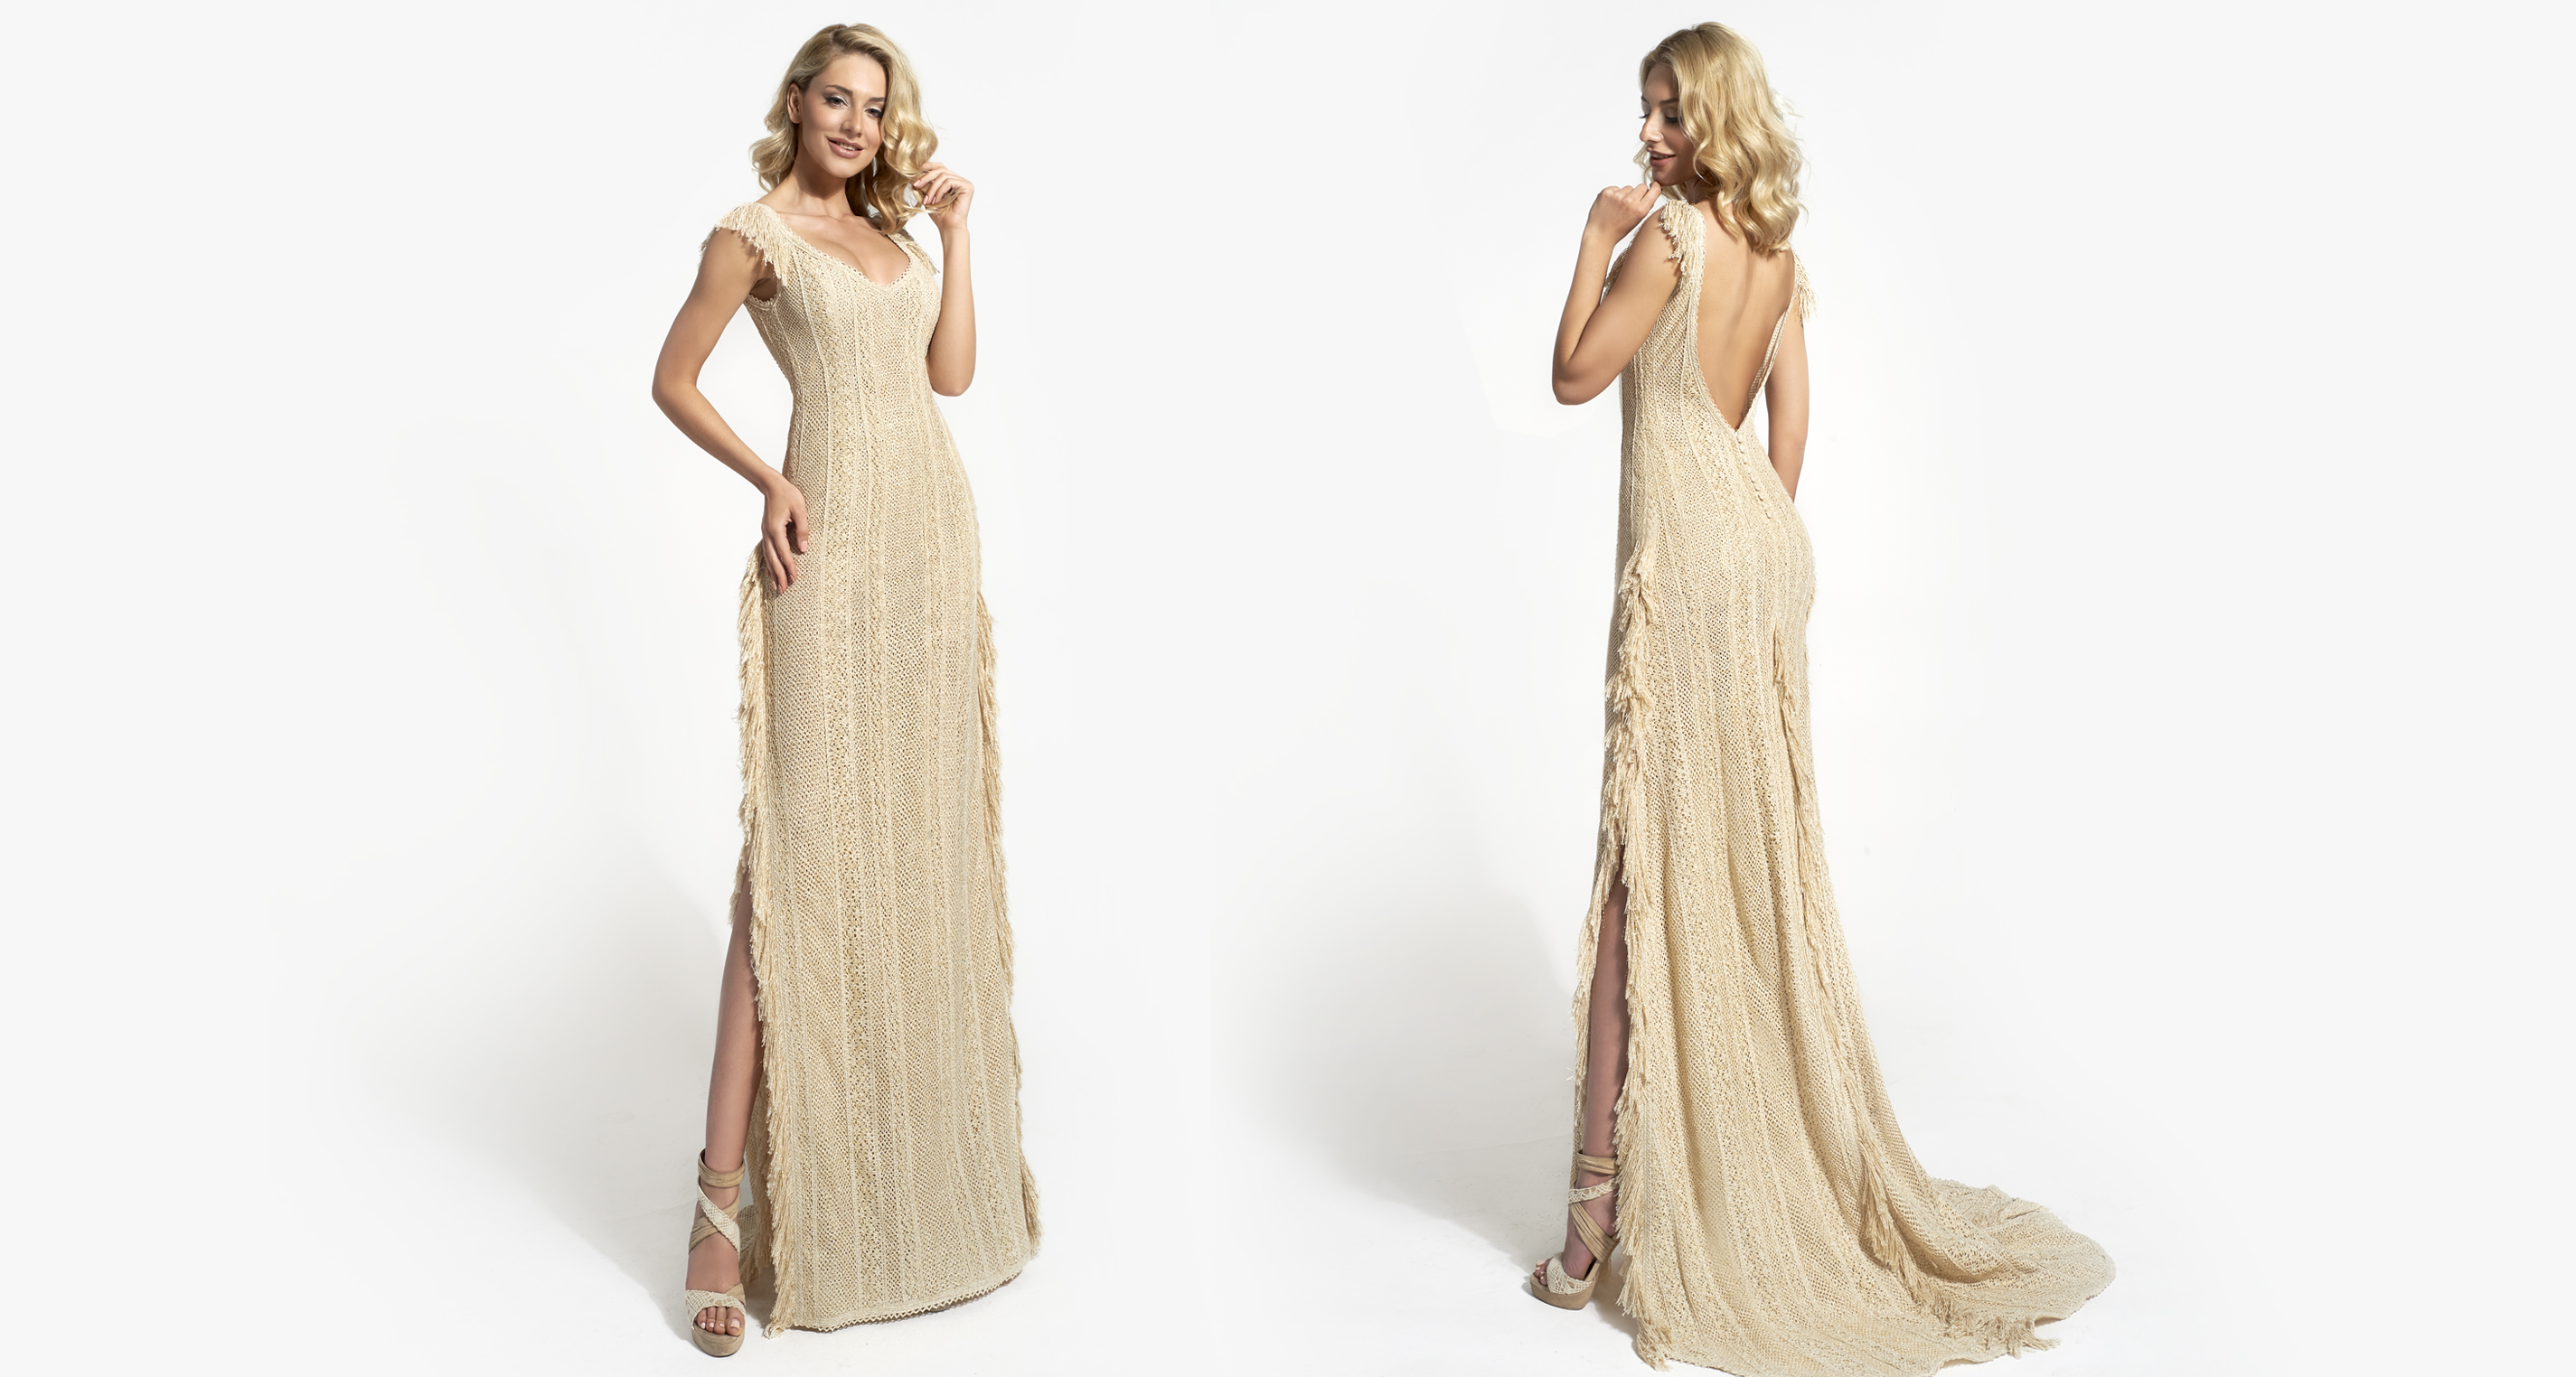 Artemisia Opulence wedding dress from  Hellenic Vintage Opulence Collection